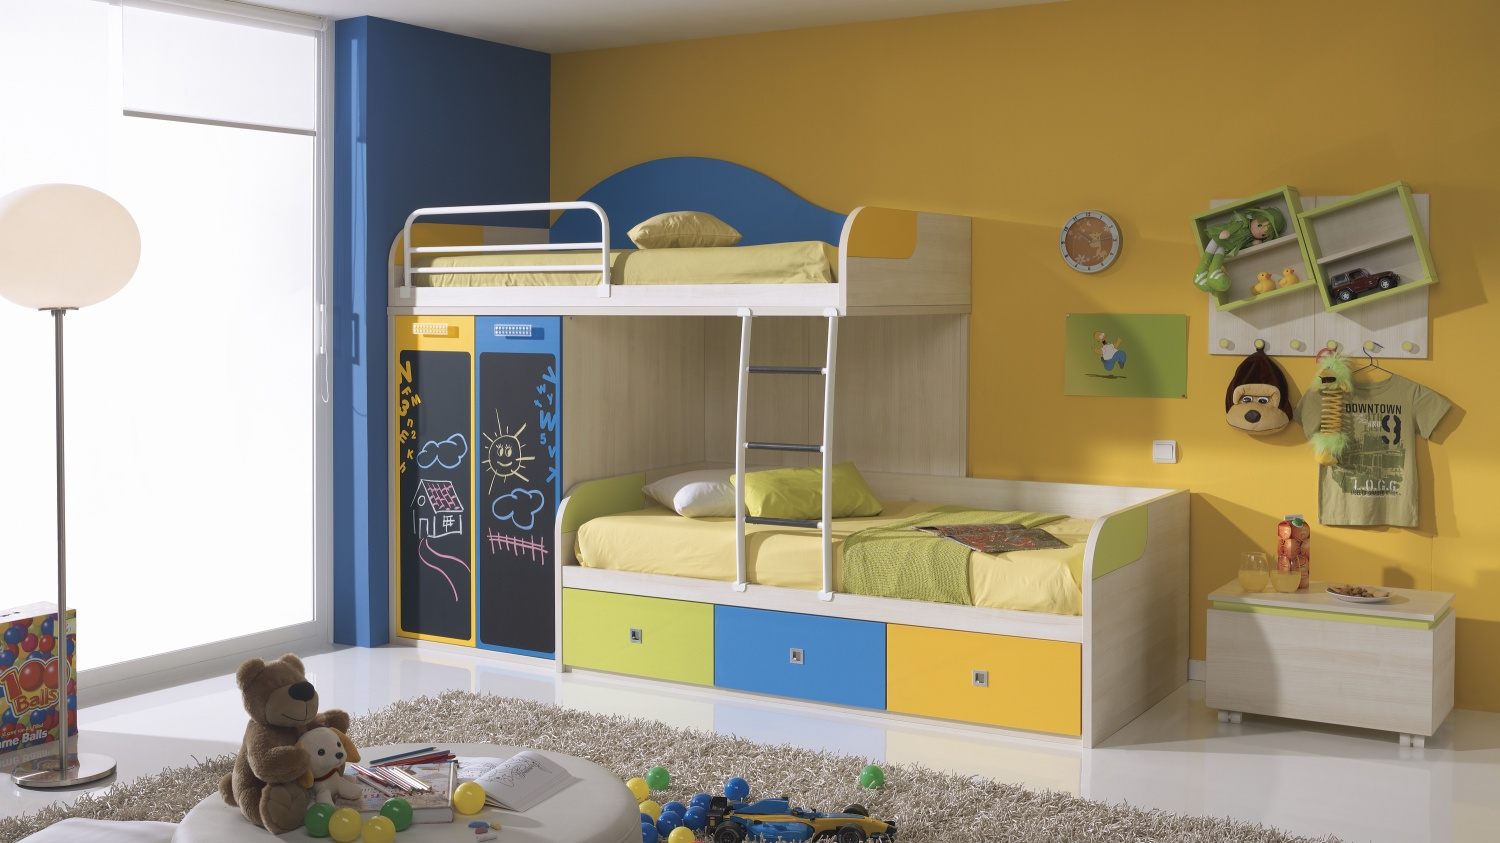 Marvelous Design Of The Loft Bed With Storage With Yellow Wall Added With Blue Curtain Ideas